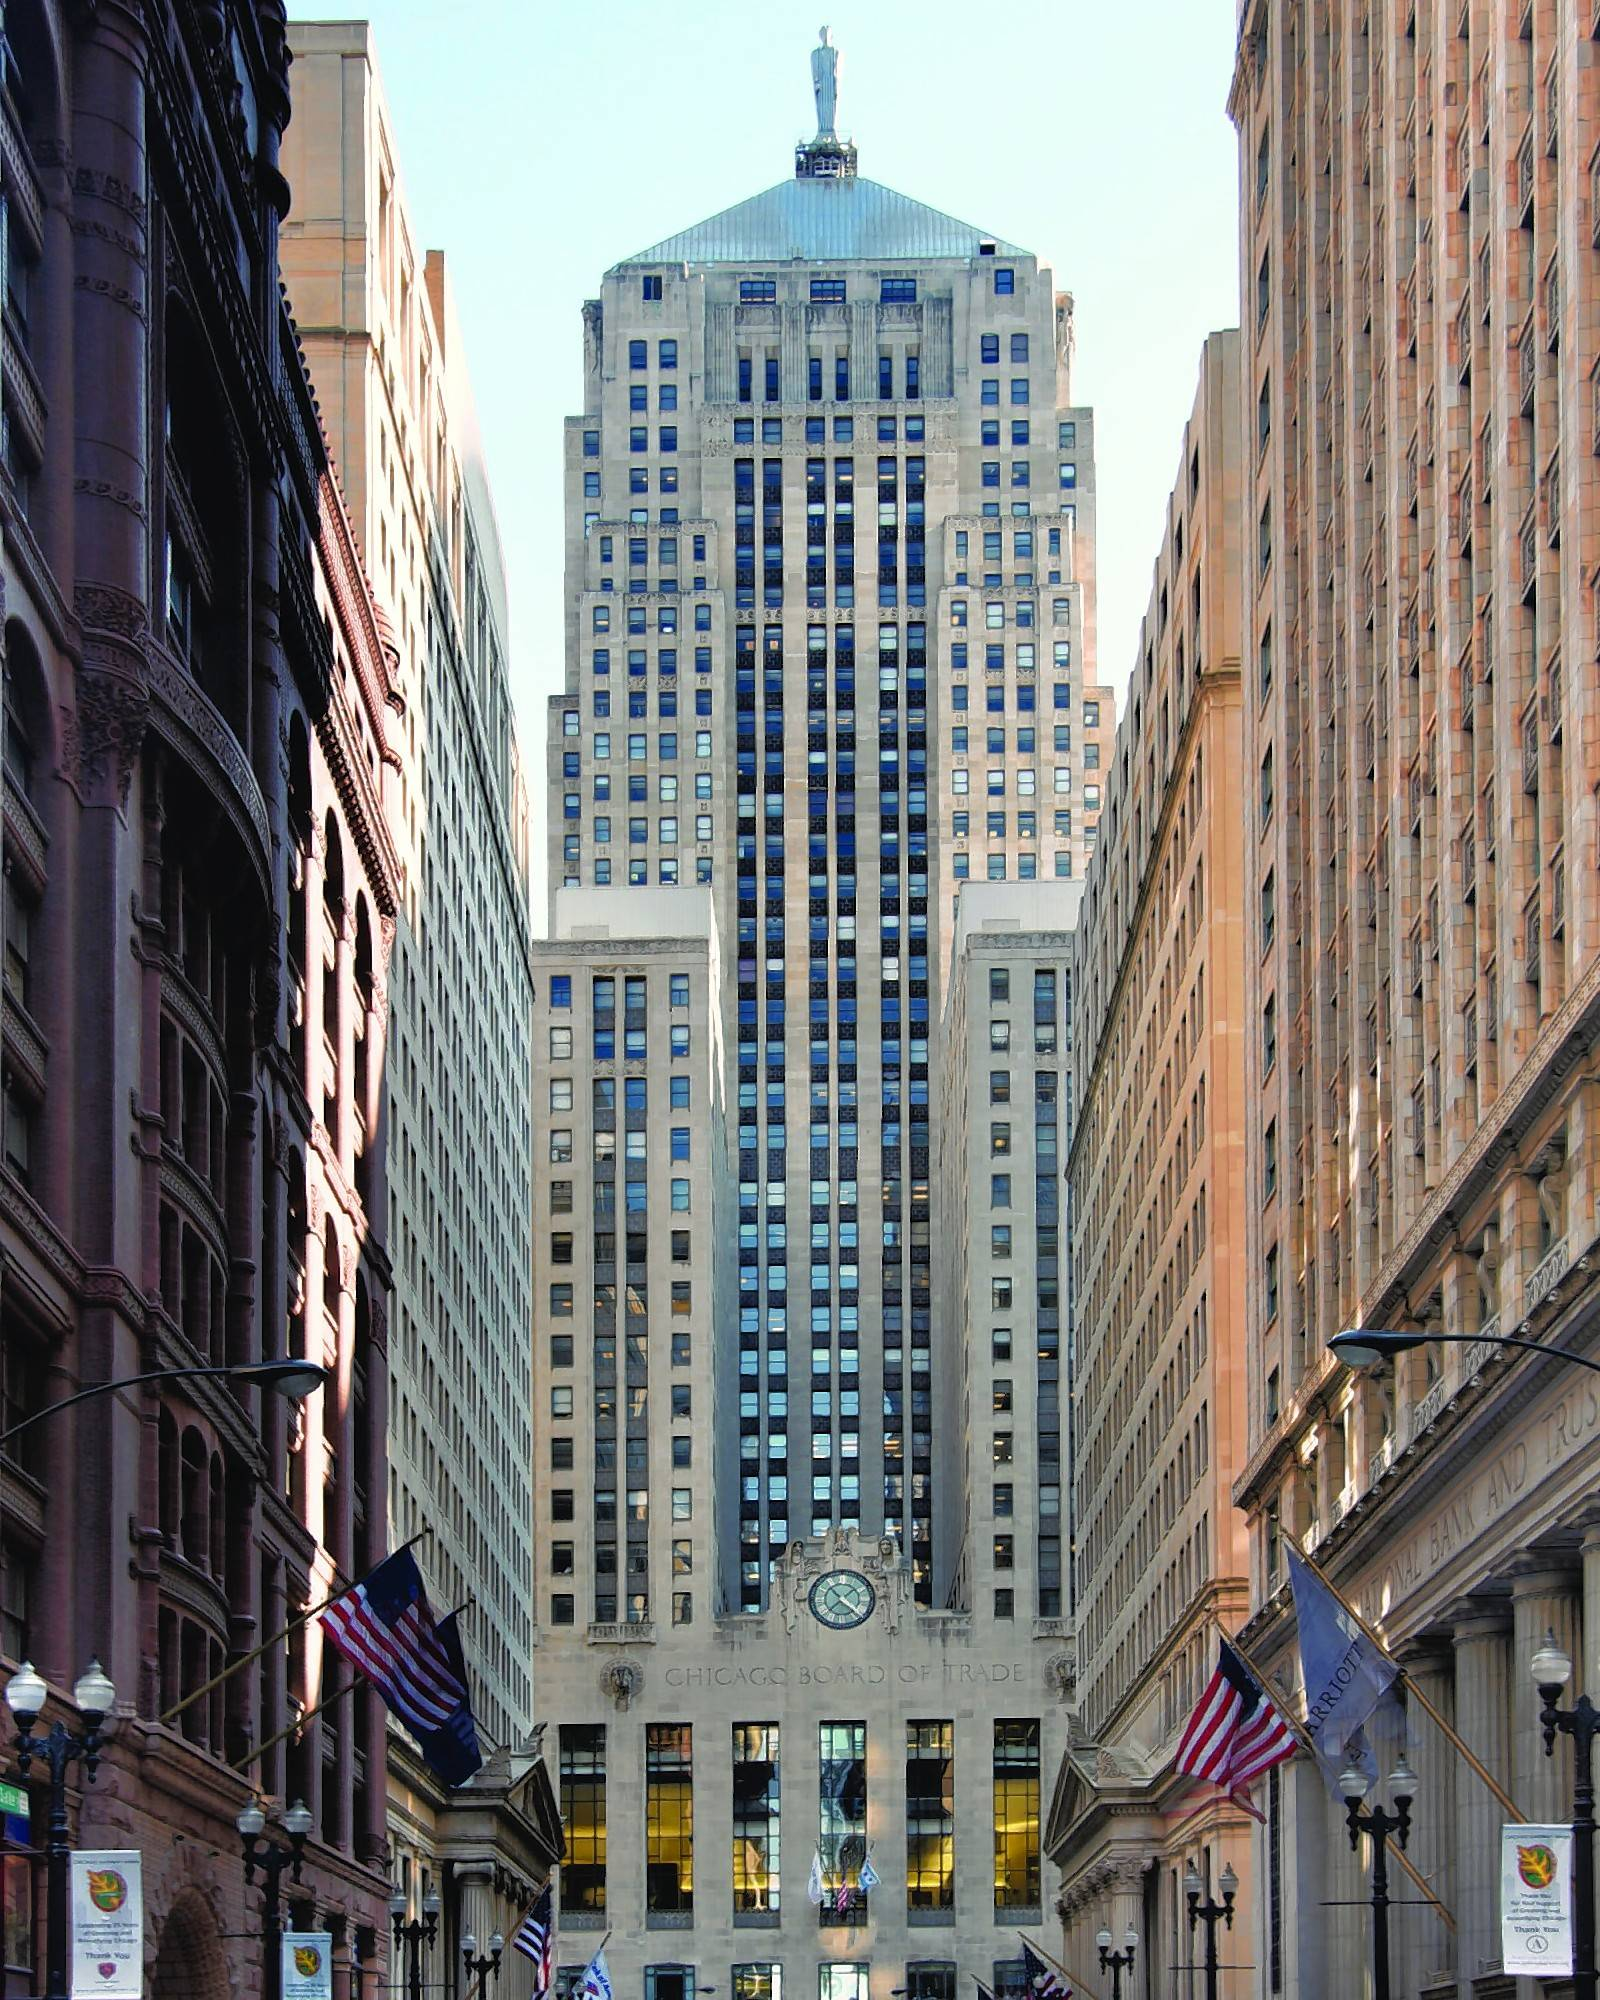 Explore the Chicago Board of Trade building and learn about Chicago's distinctive architecture during Open House Chicago Oct. 14-15.